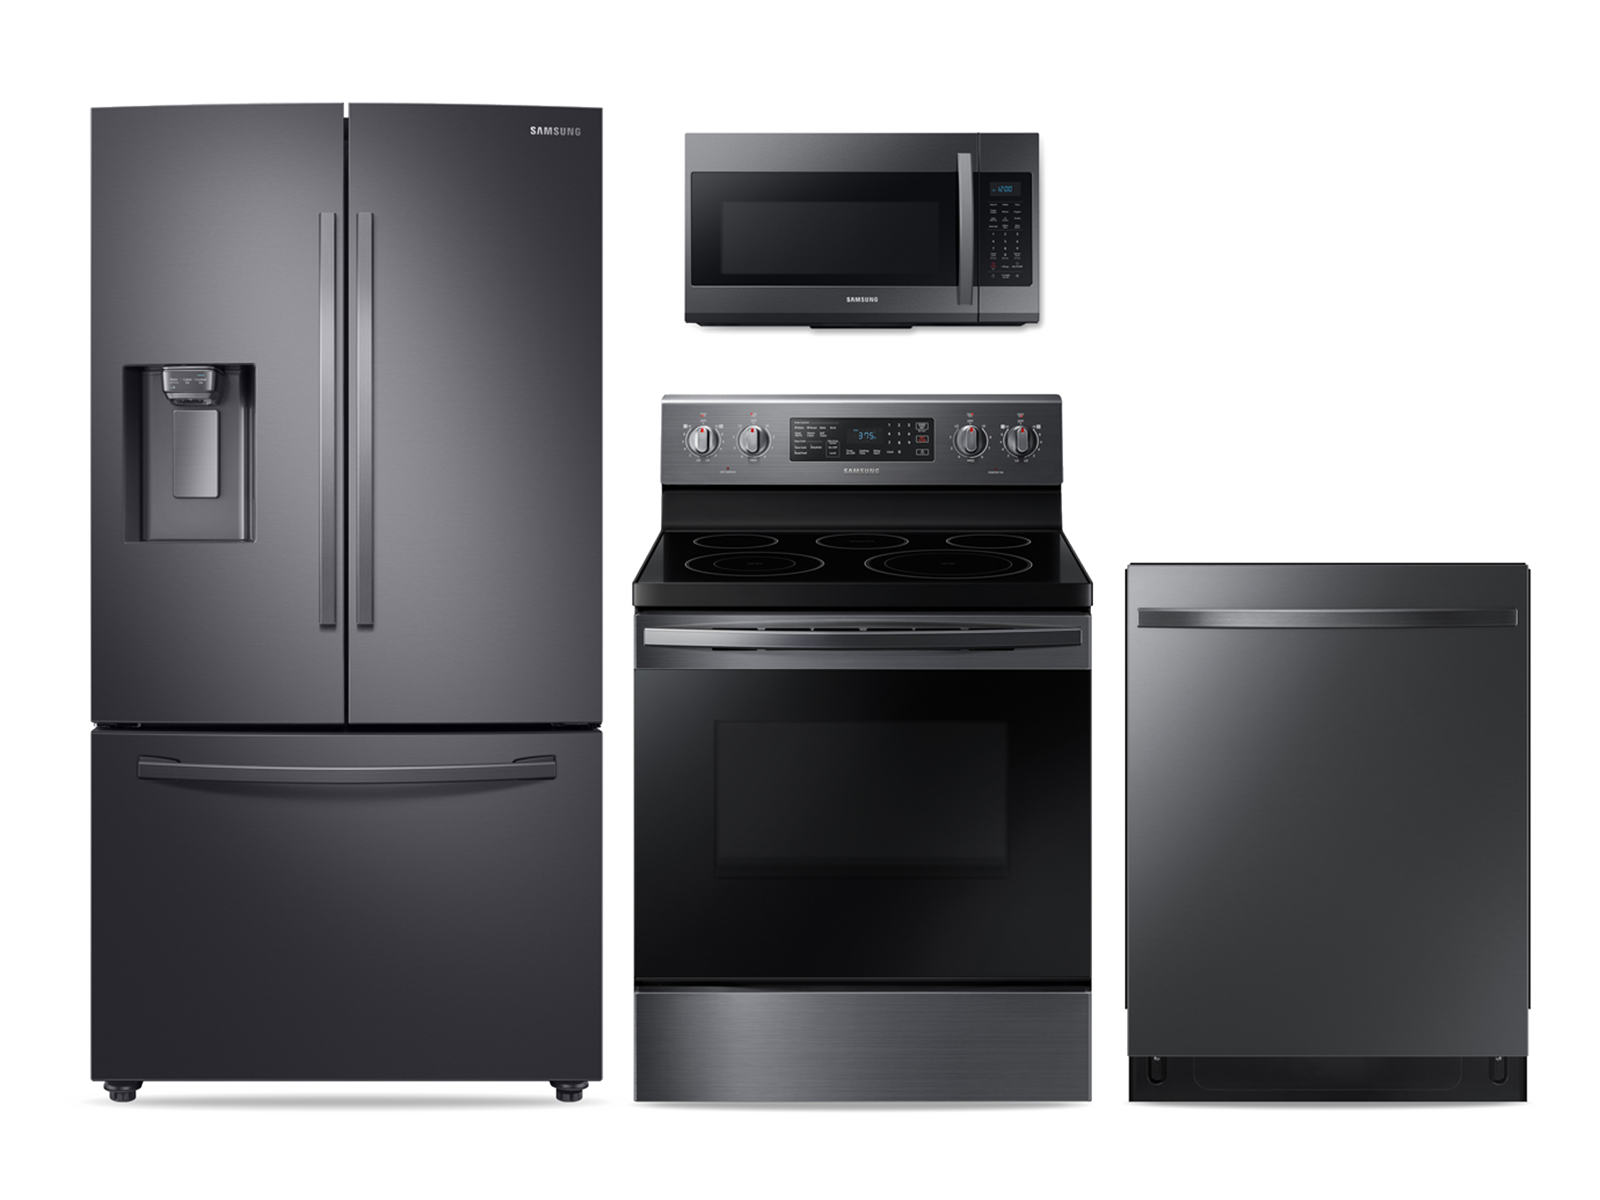 A new kitchen awaits in eye-catching black stainless steel